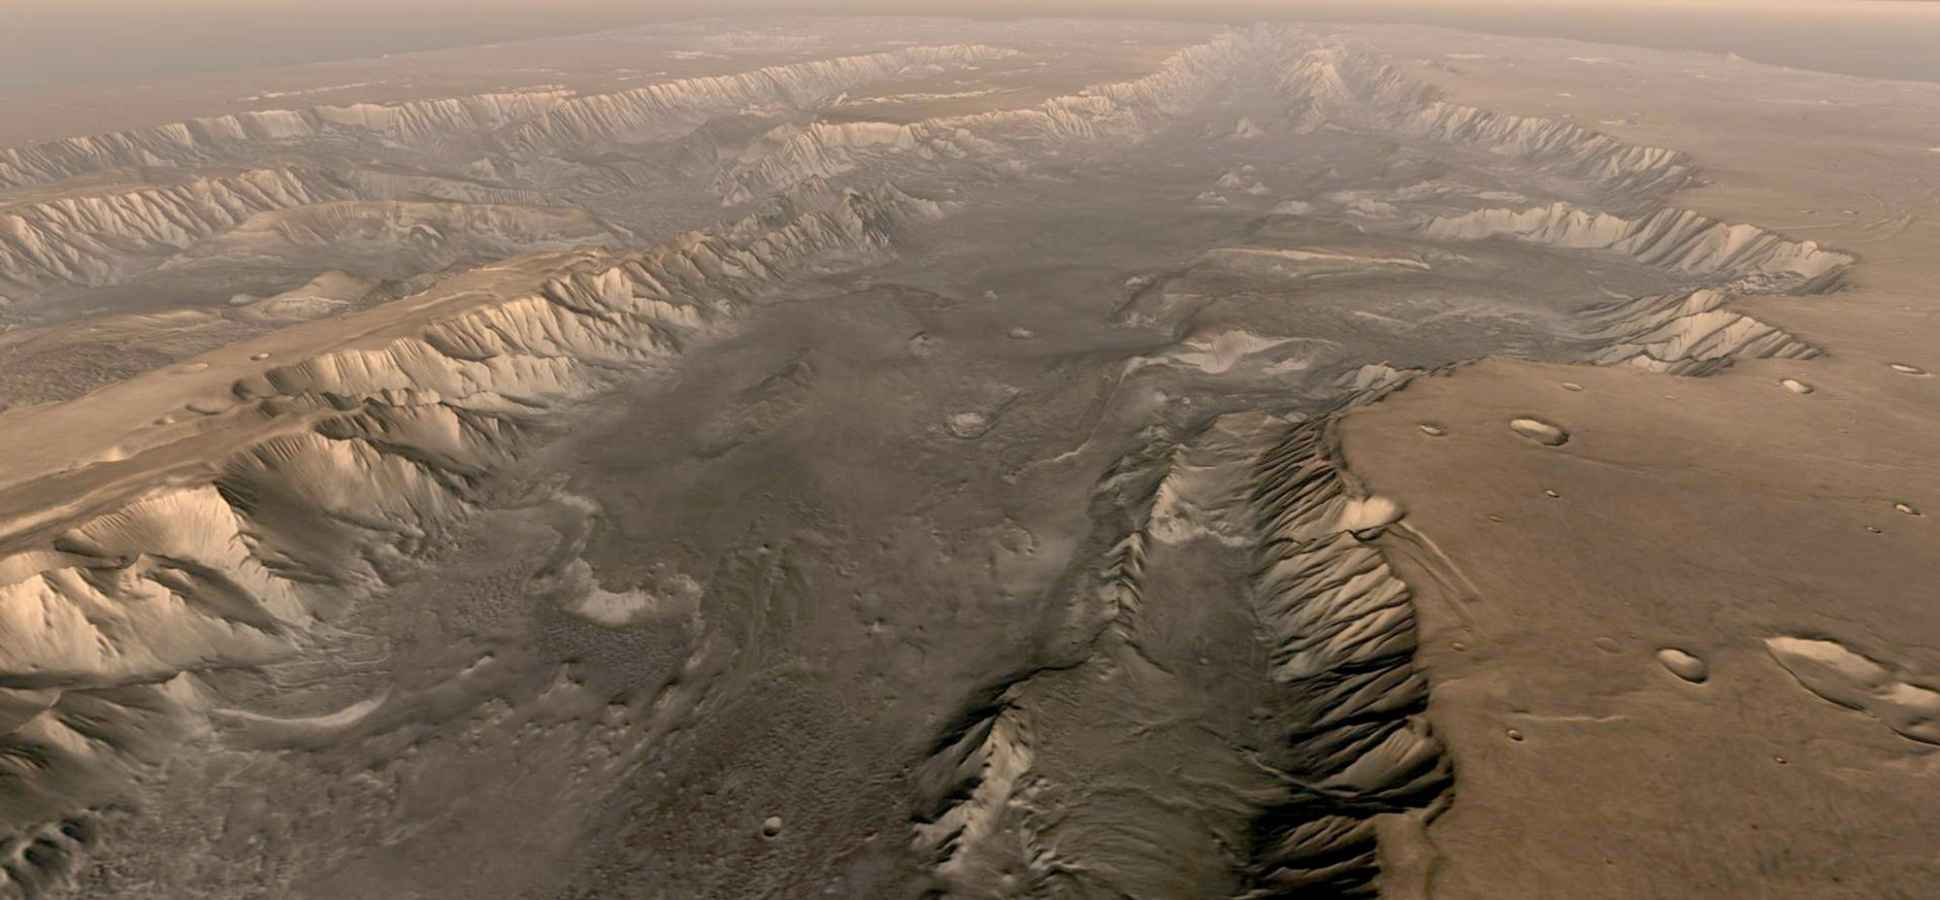 Ambitious Startup Plans to 3-D Print Mars-Dwelling Prototypes in Mojave Desert